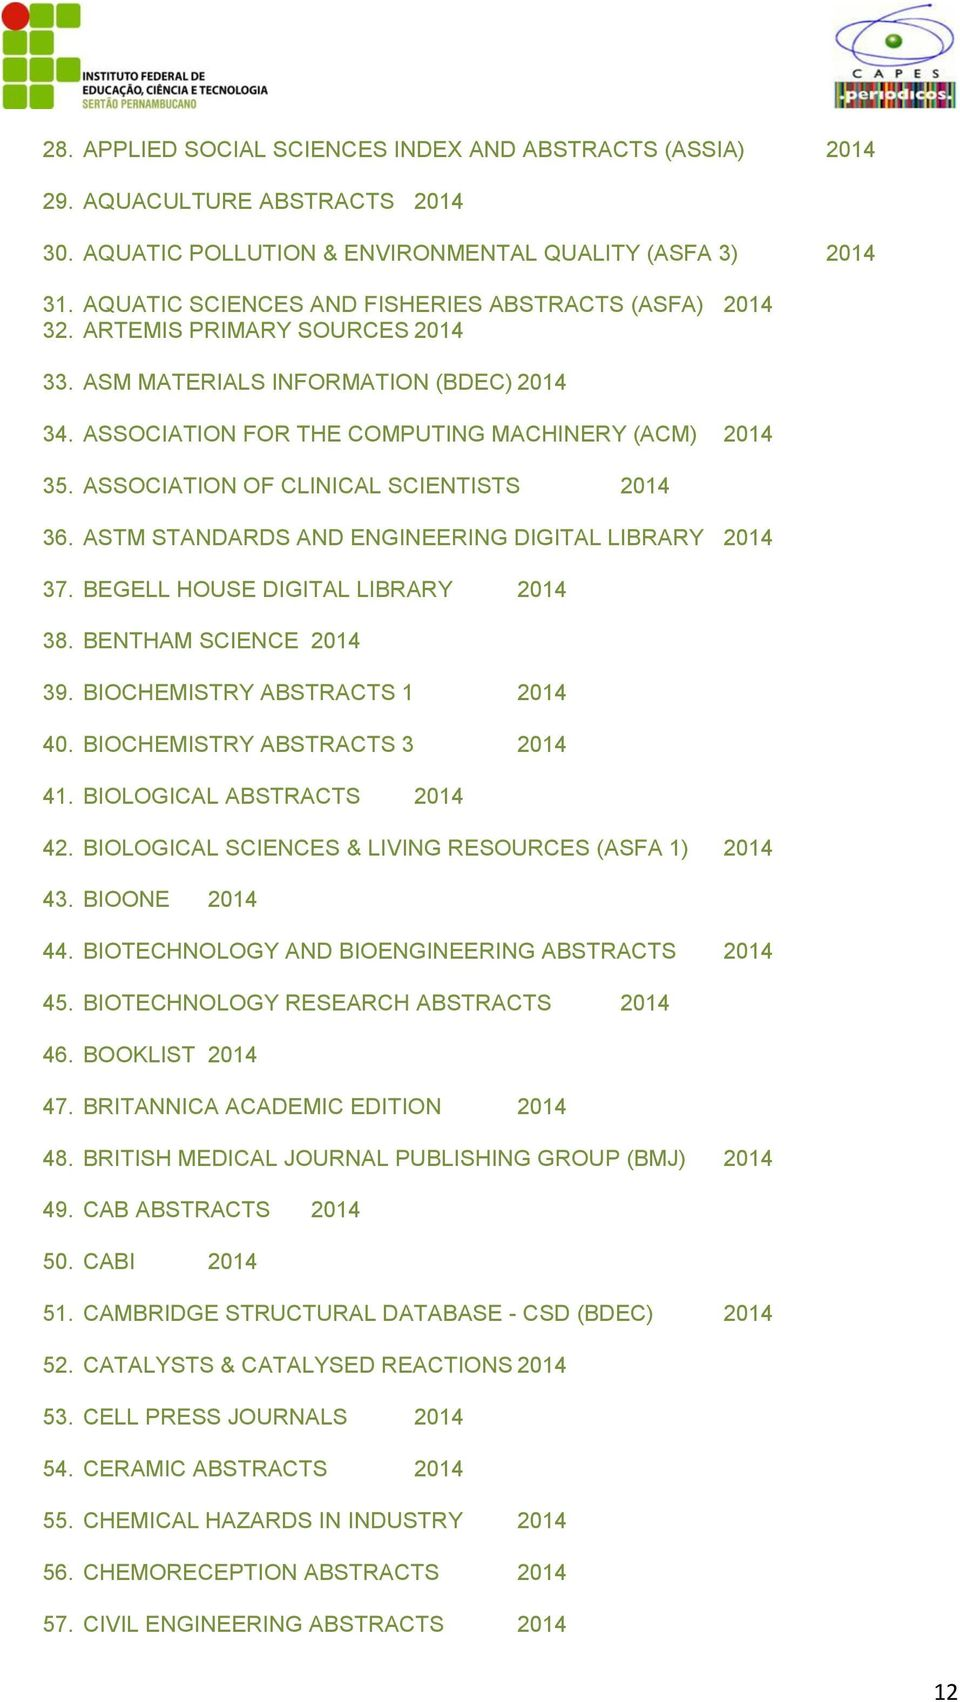 ASSOCIATION OF CLINICAL SCIENTISTS 2014 36. ASTM STANDARDS AND ENGINEERING DIGITAL LIBRARY 2014 37. BEGELL HOUSE DIGITAL LIBRARY 2014 38. BENTHAM SCIENCE 2014 39. BIOCHEMISTRY ABSTRACTS 1 2014 40.